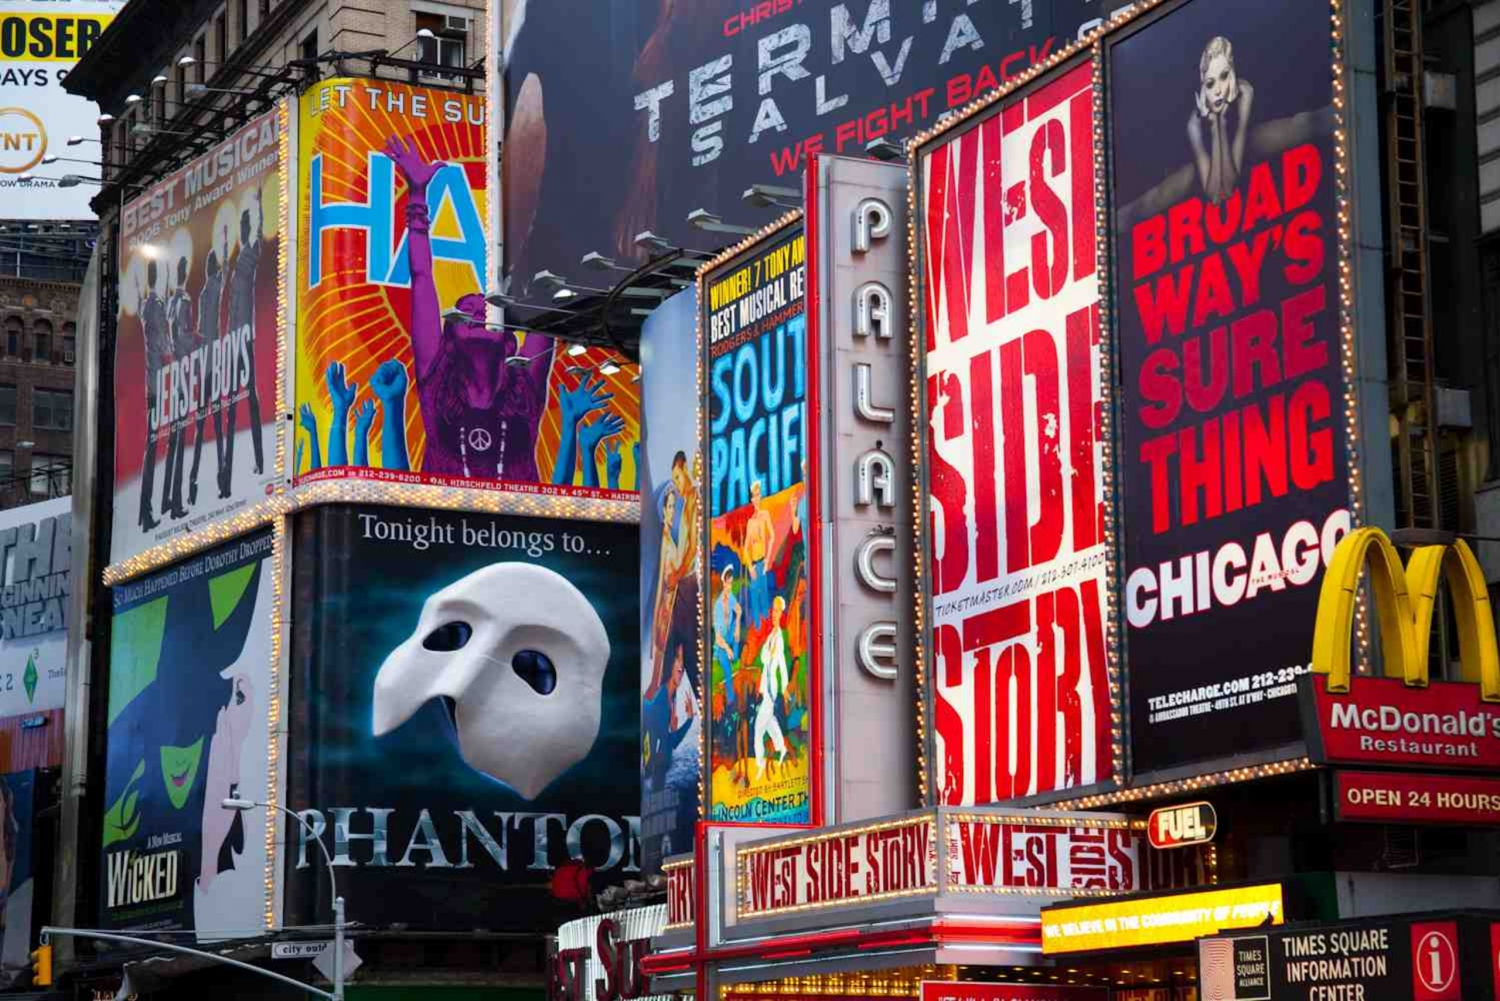 Broadway Theater District Walking Tour in New York